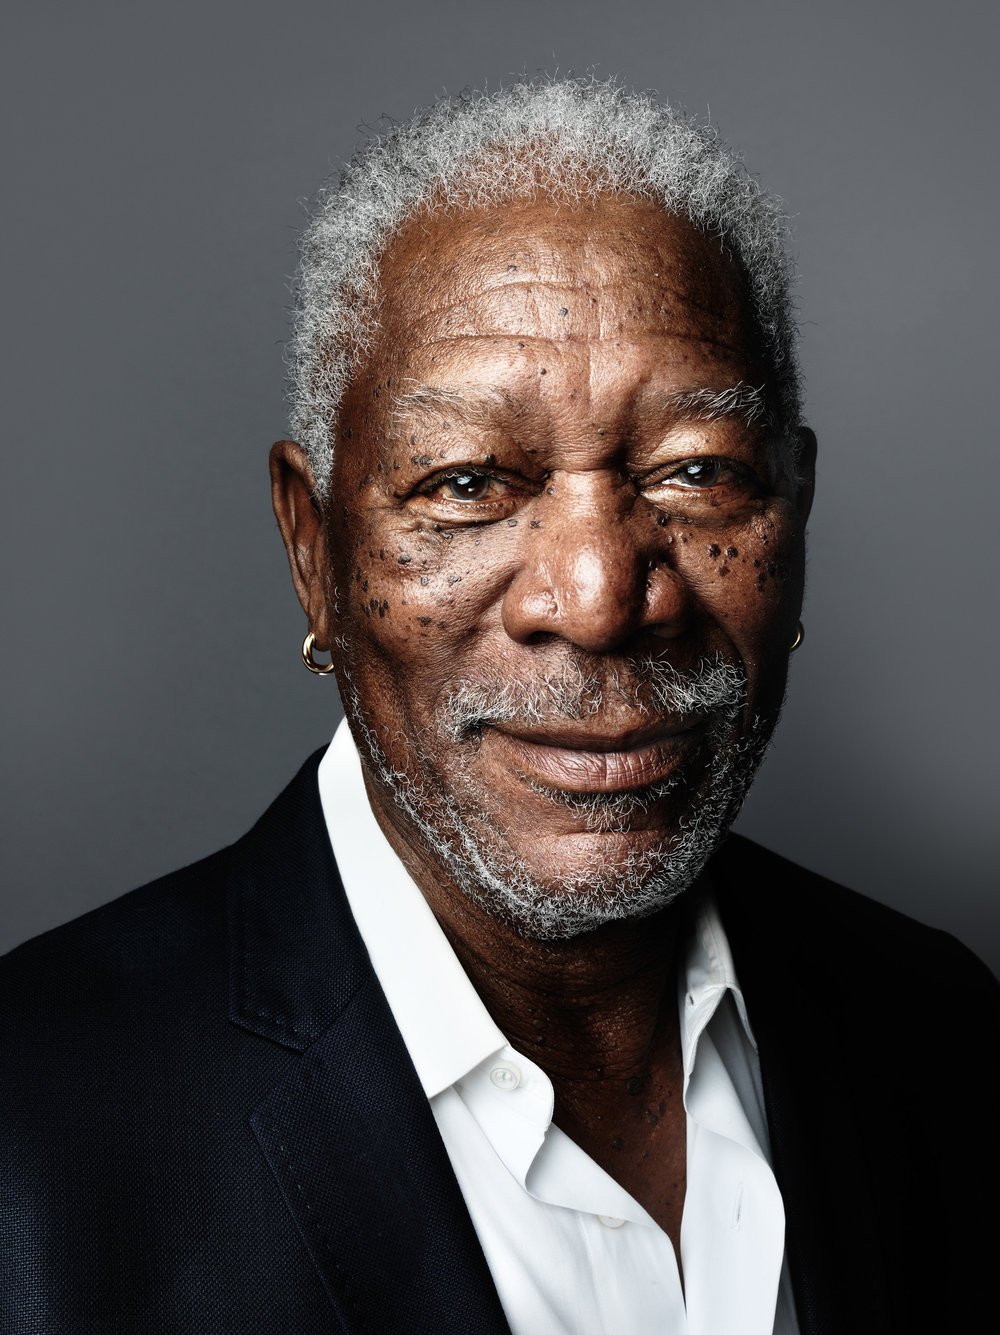 MORGAN_FREEMAN_0029TPK_F2.jpg